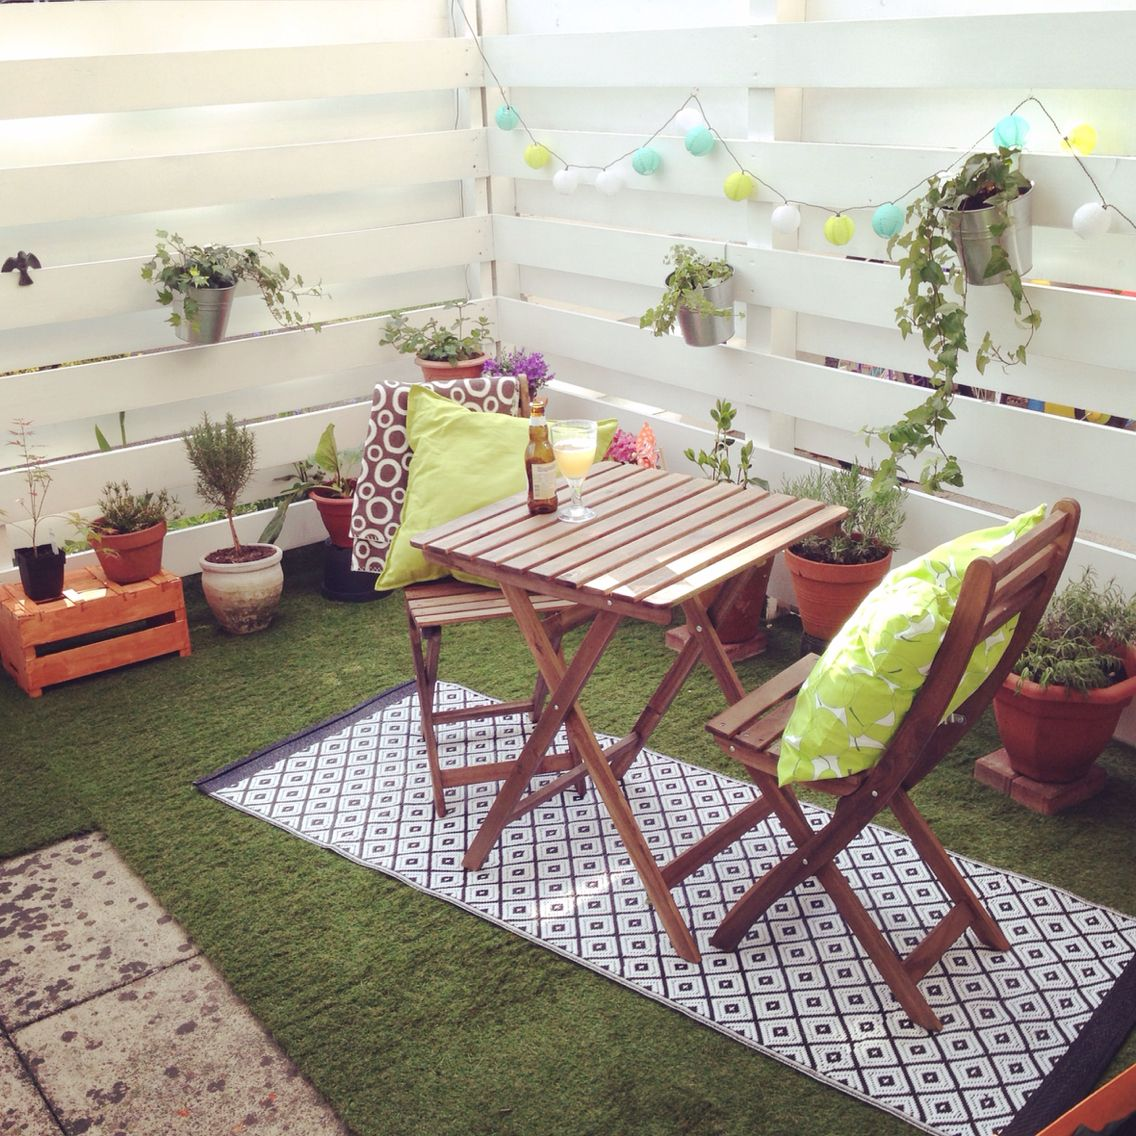 Our New Purchase Artificial Grass For The Patio With Ikea